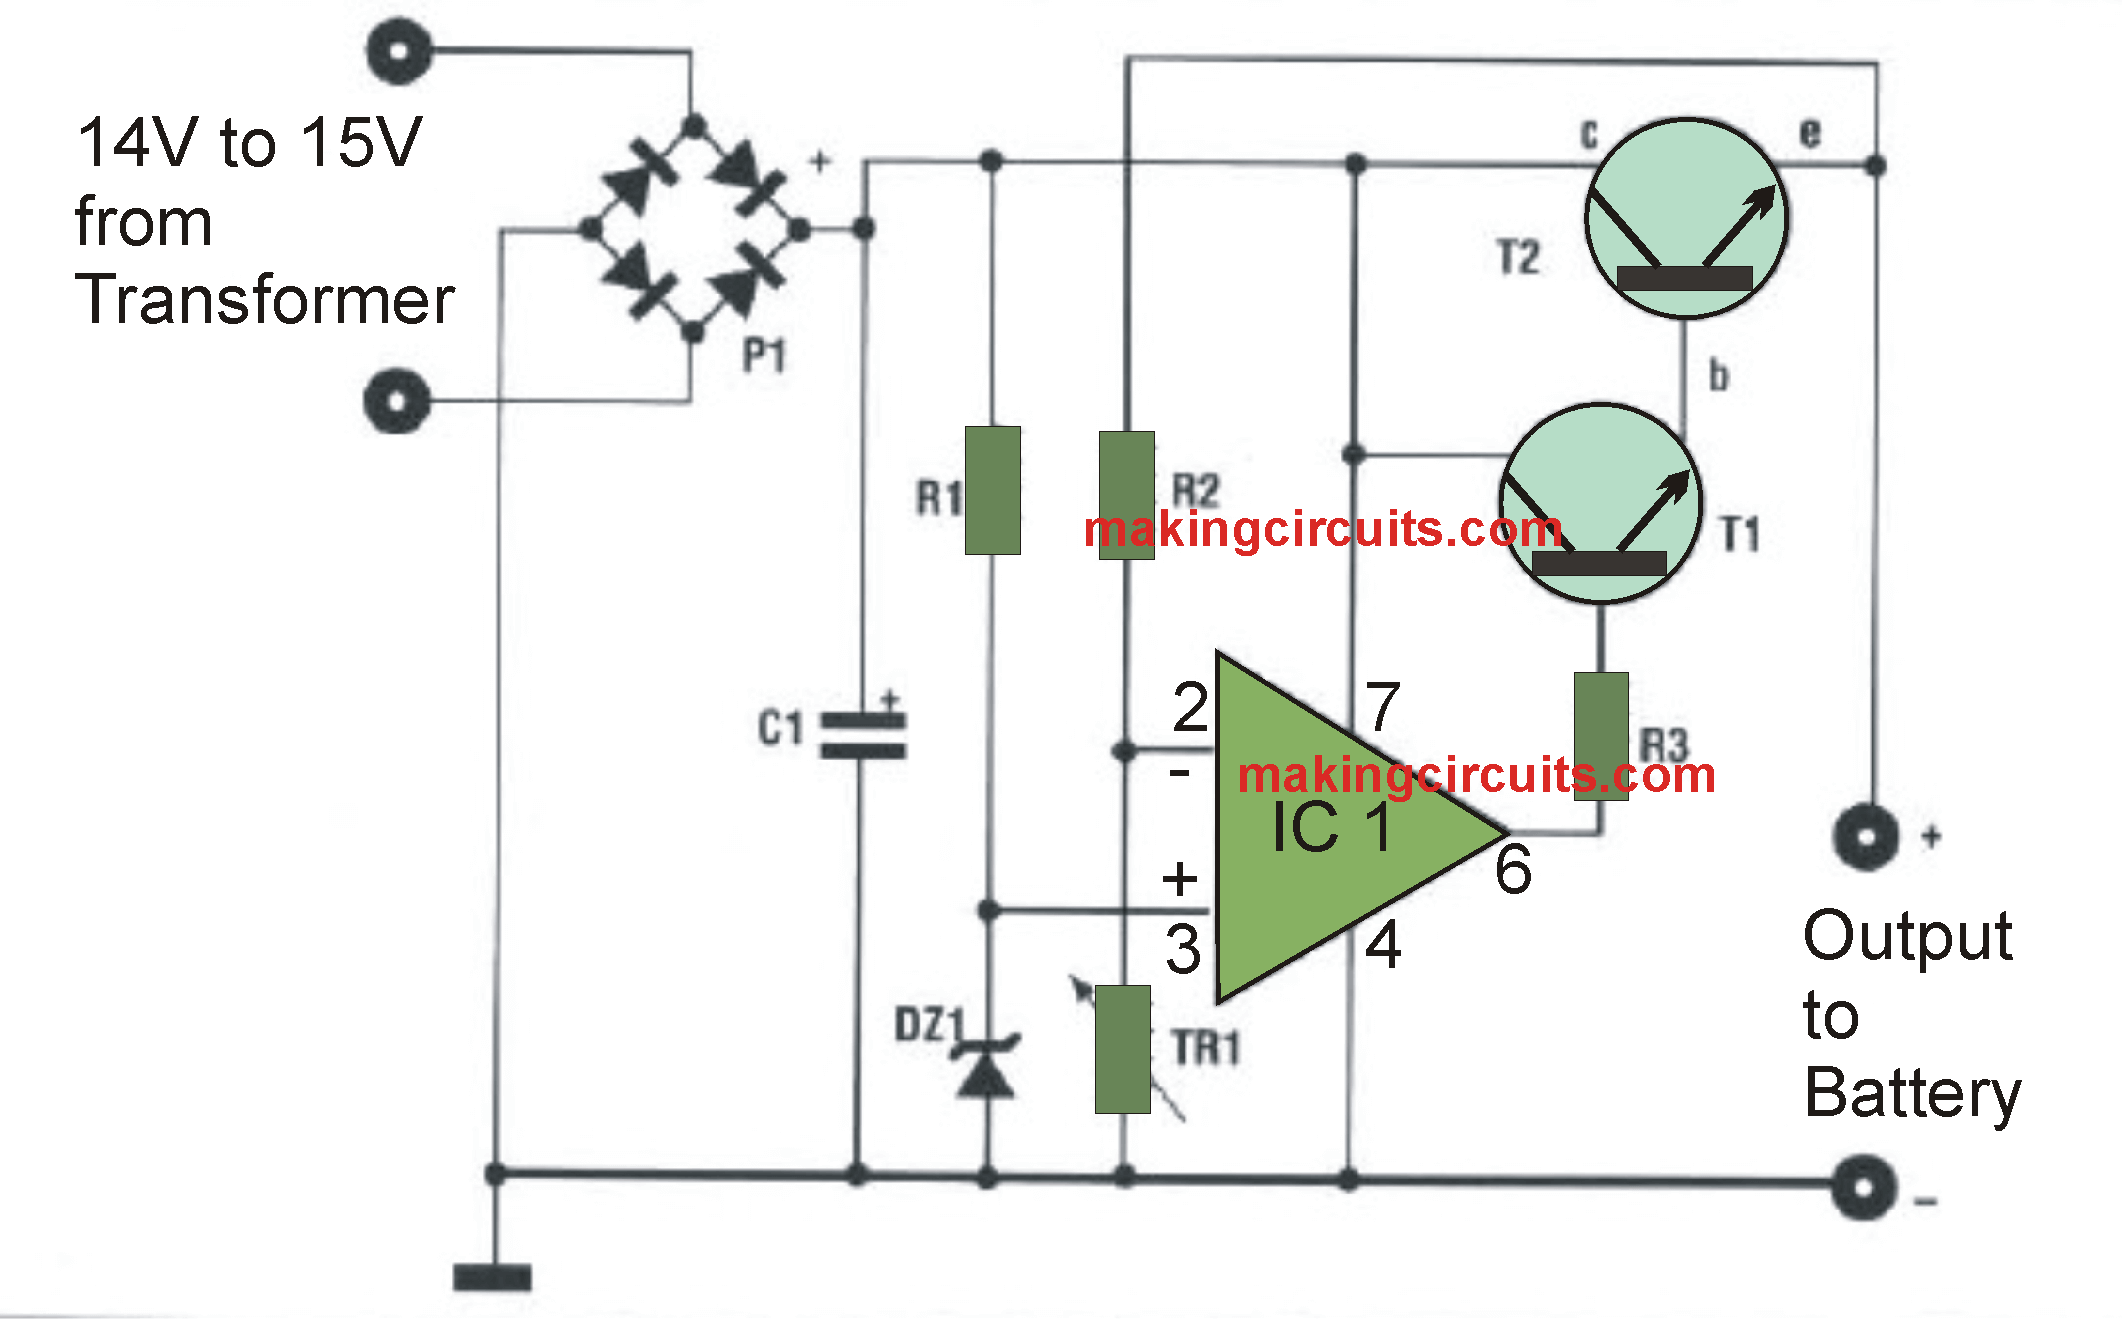 Enjoyable Automatic 12V Battery Charger Circuit Batteries In 2019 Wiring Cloud Inklaidewilluminateatxorg